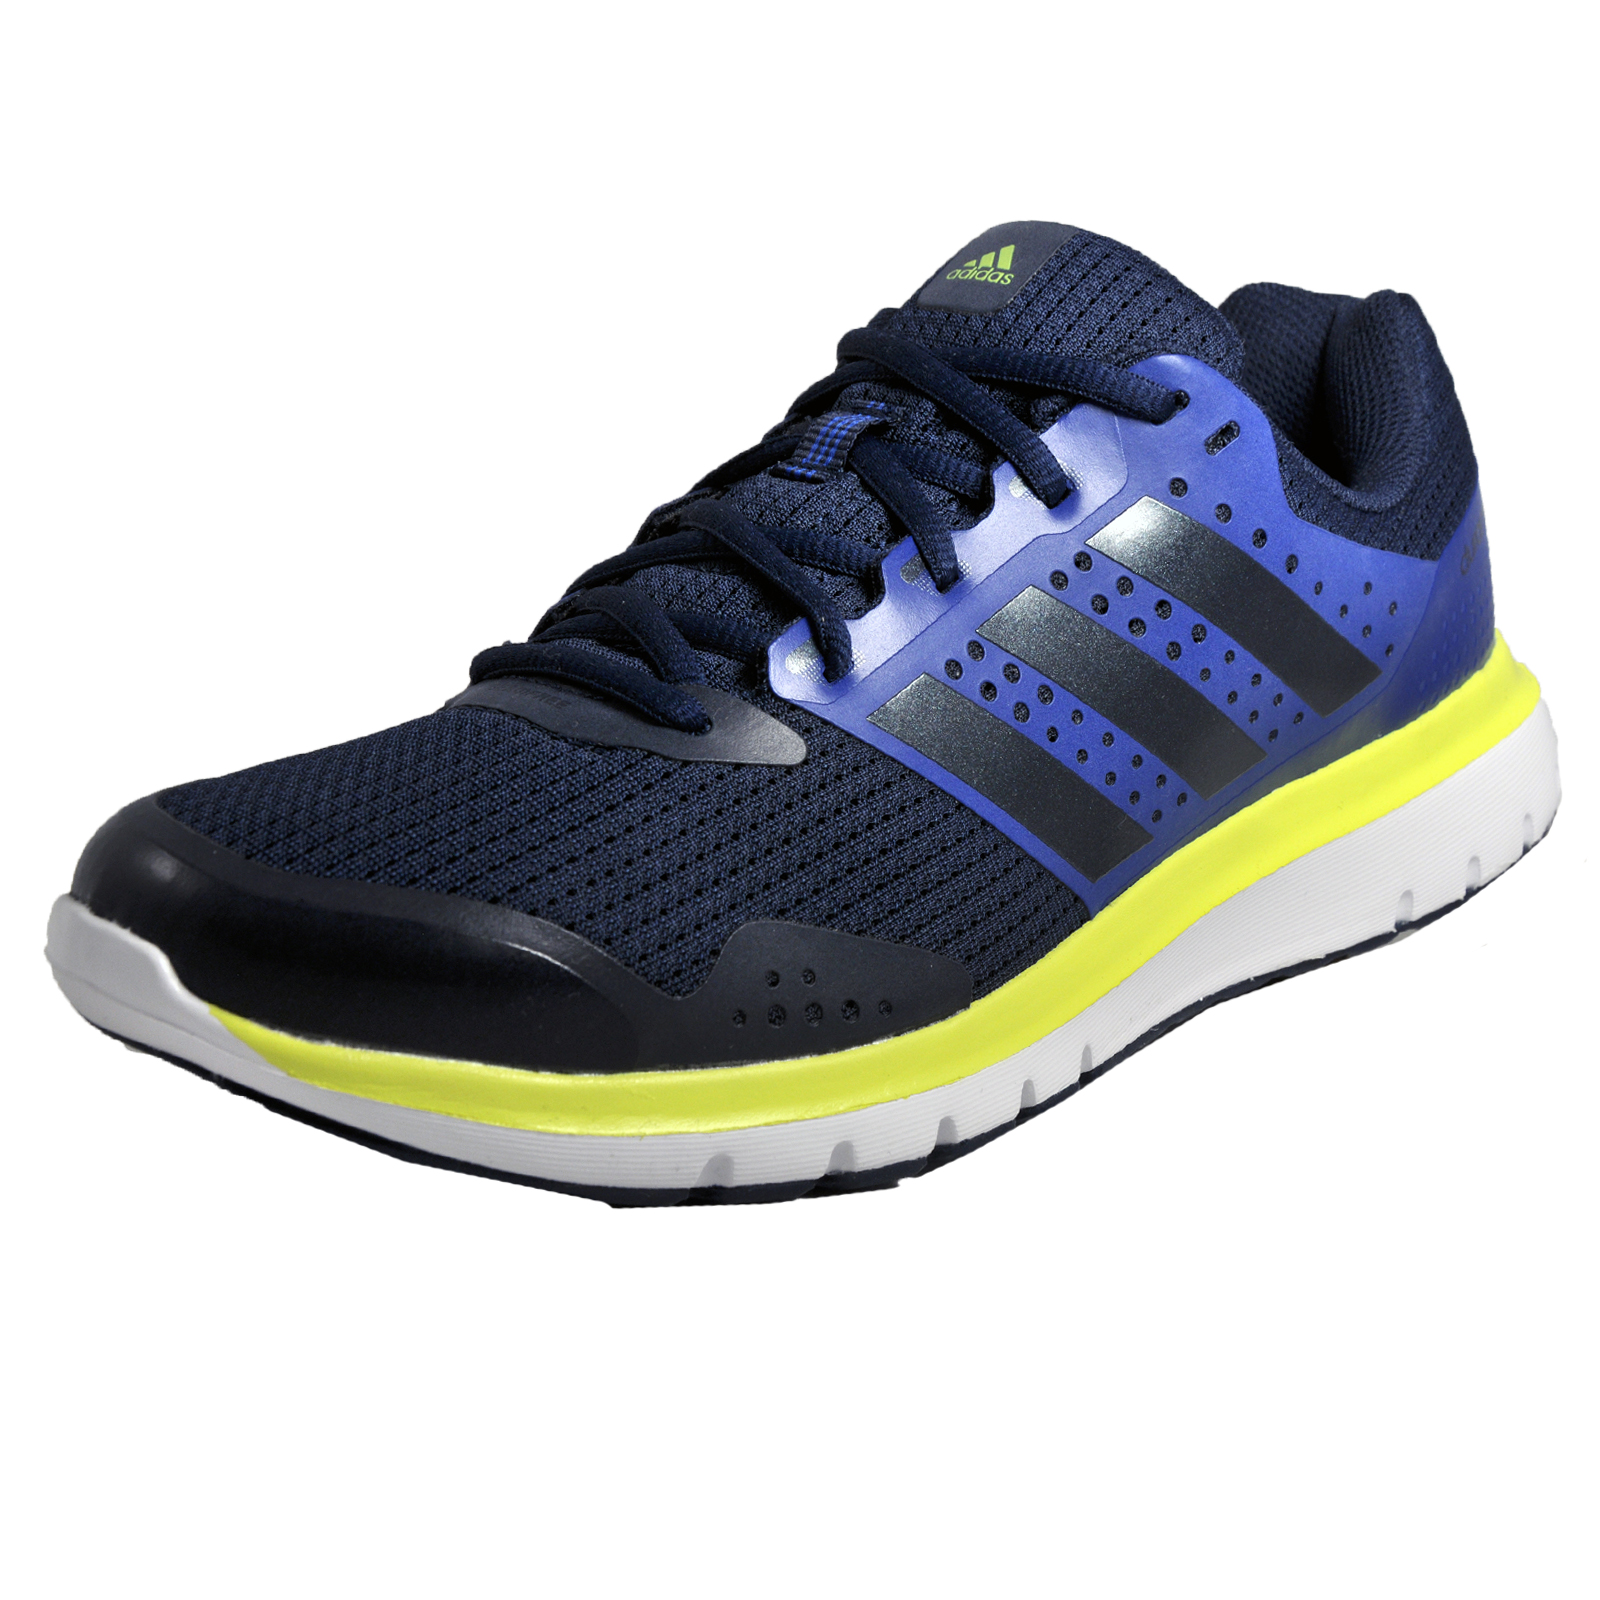 Adidas Duramo 2 Mens Running Shoes Fitness Gym Workout Trainers Navy